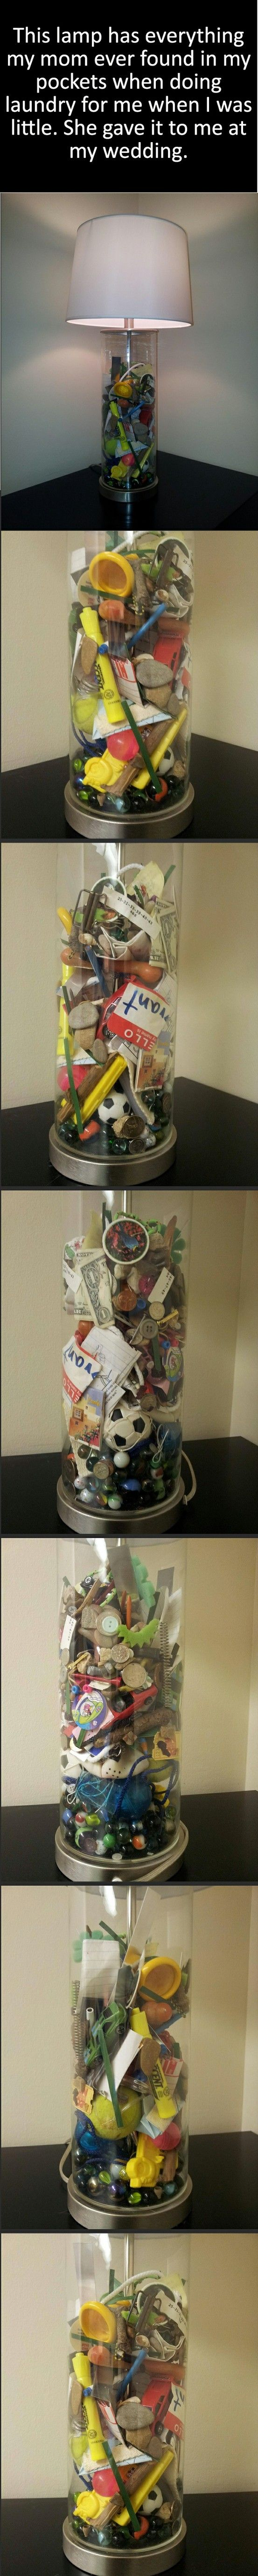 A mother saved all the things she found on his son pockets when doing the laundry. She gave him this lamp with all things found for his wedding. thats such a cute idea!   # Pin++ for Pinterest #